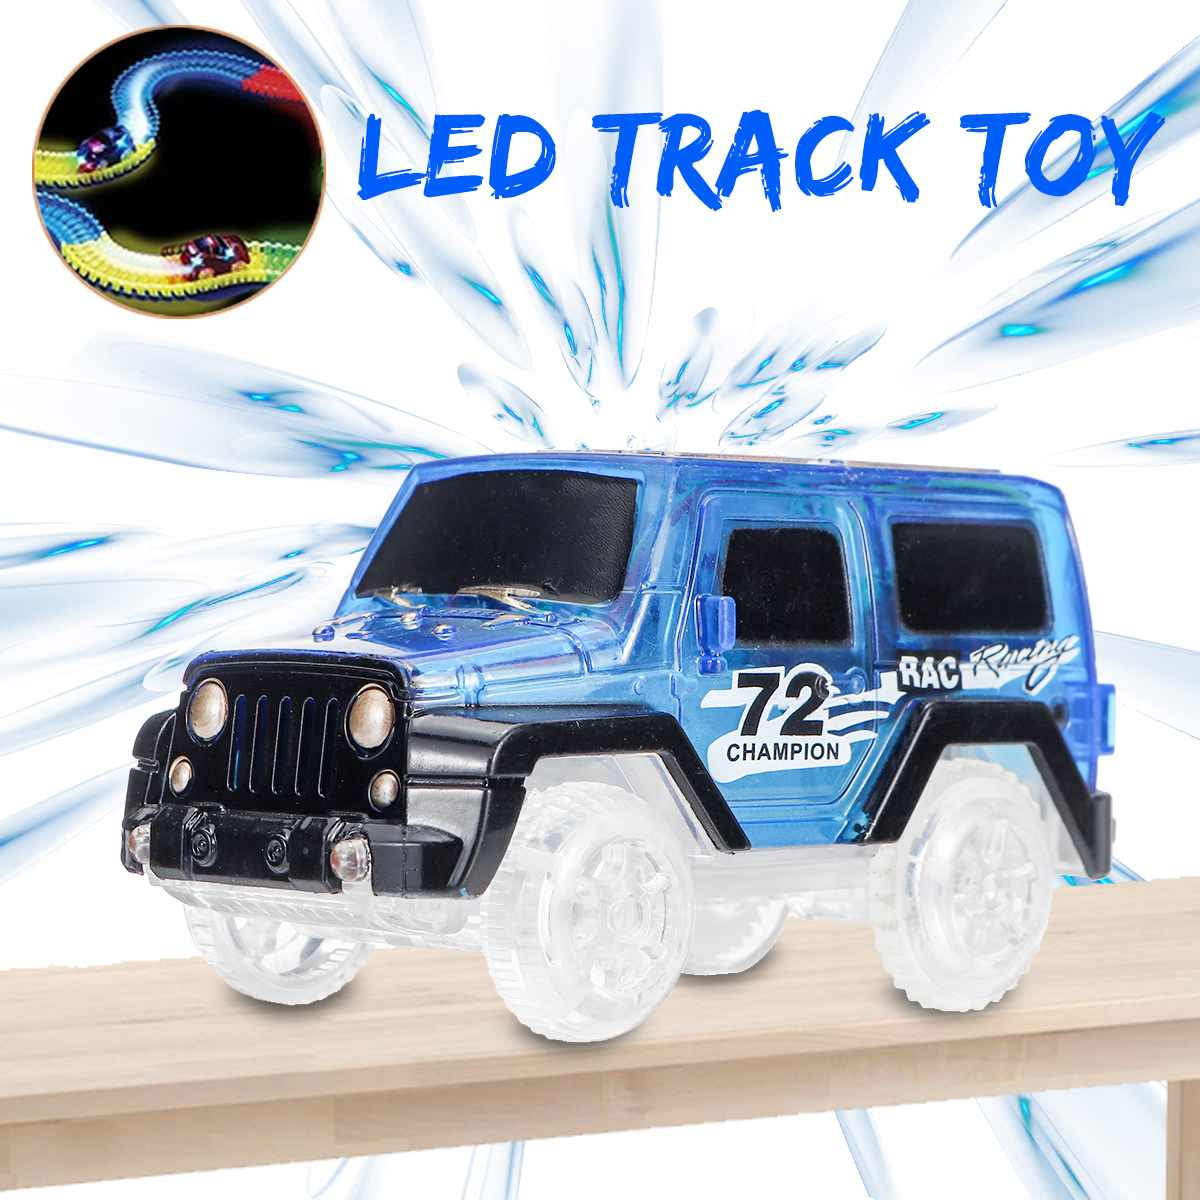 Electronics Car For Glow Track With LED Flashing Lights Glow Track Spare Parts Car Toys For Boys&Girls Children Gift